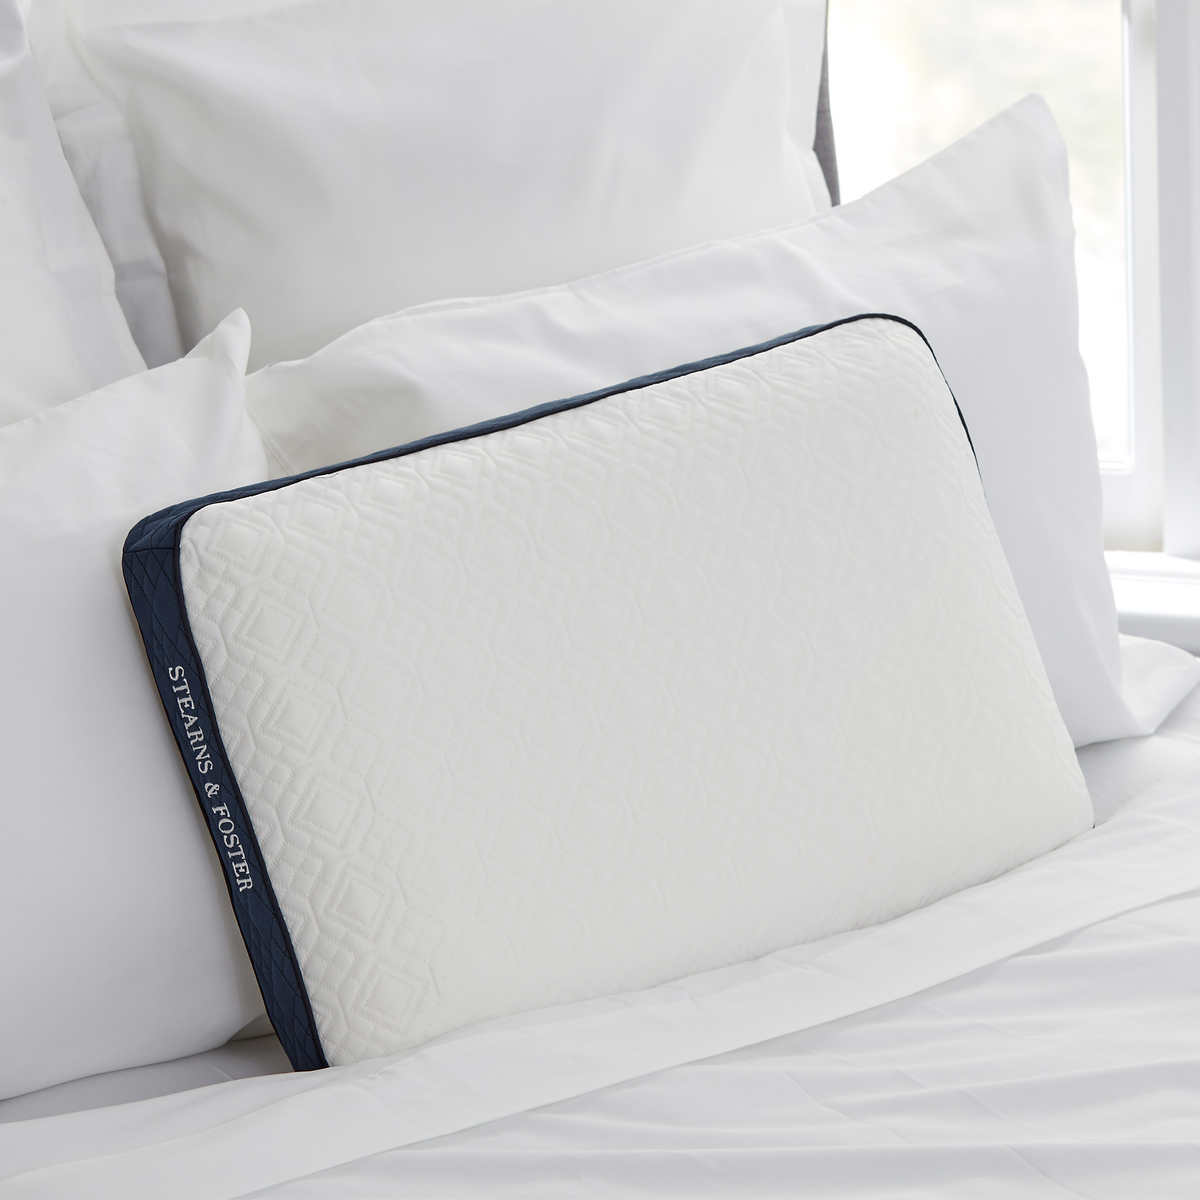 Stearns Foster Memory Foam Pillow With Cool Touch Cover